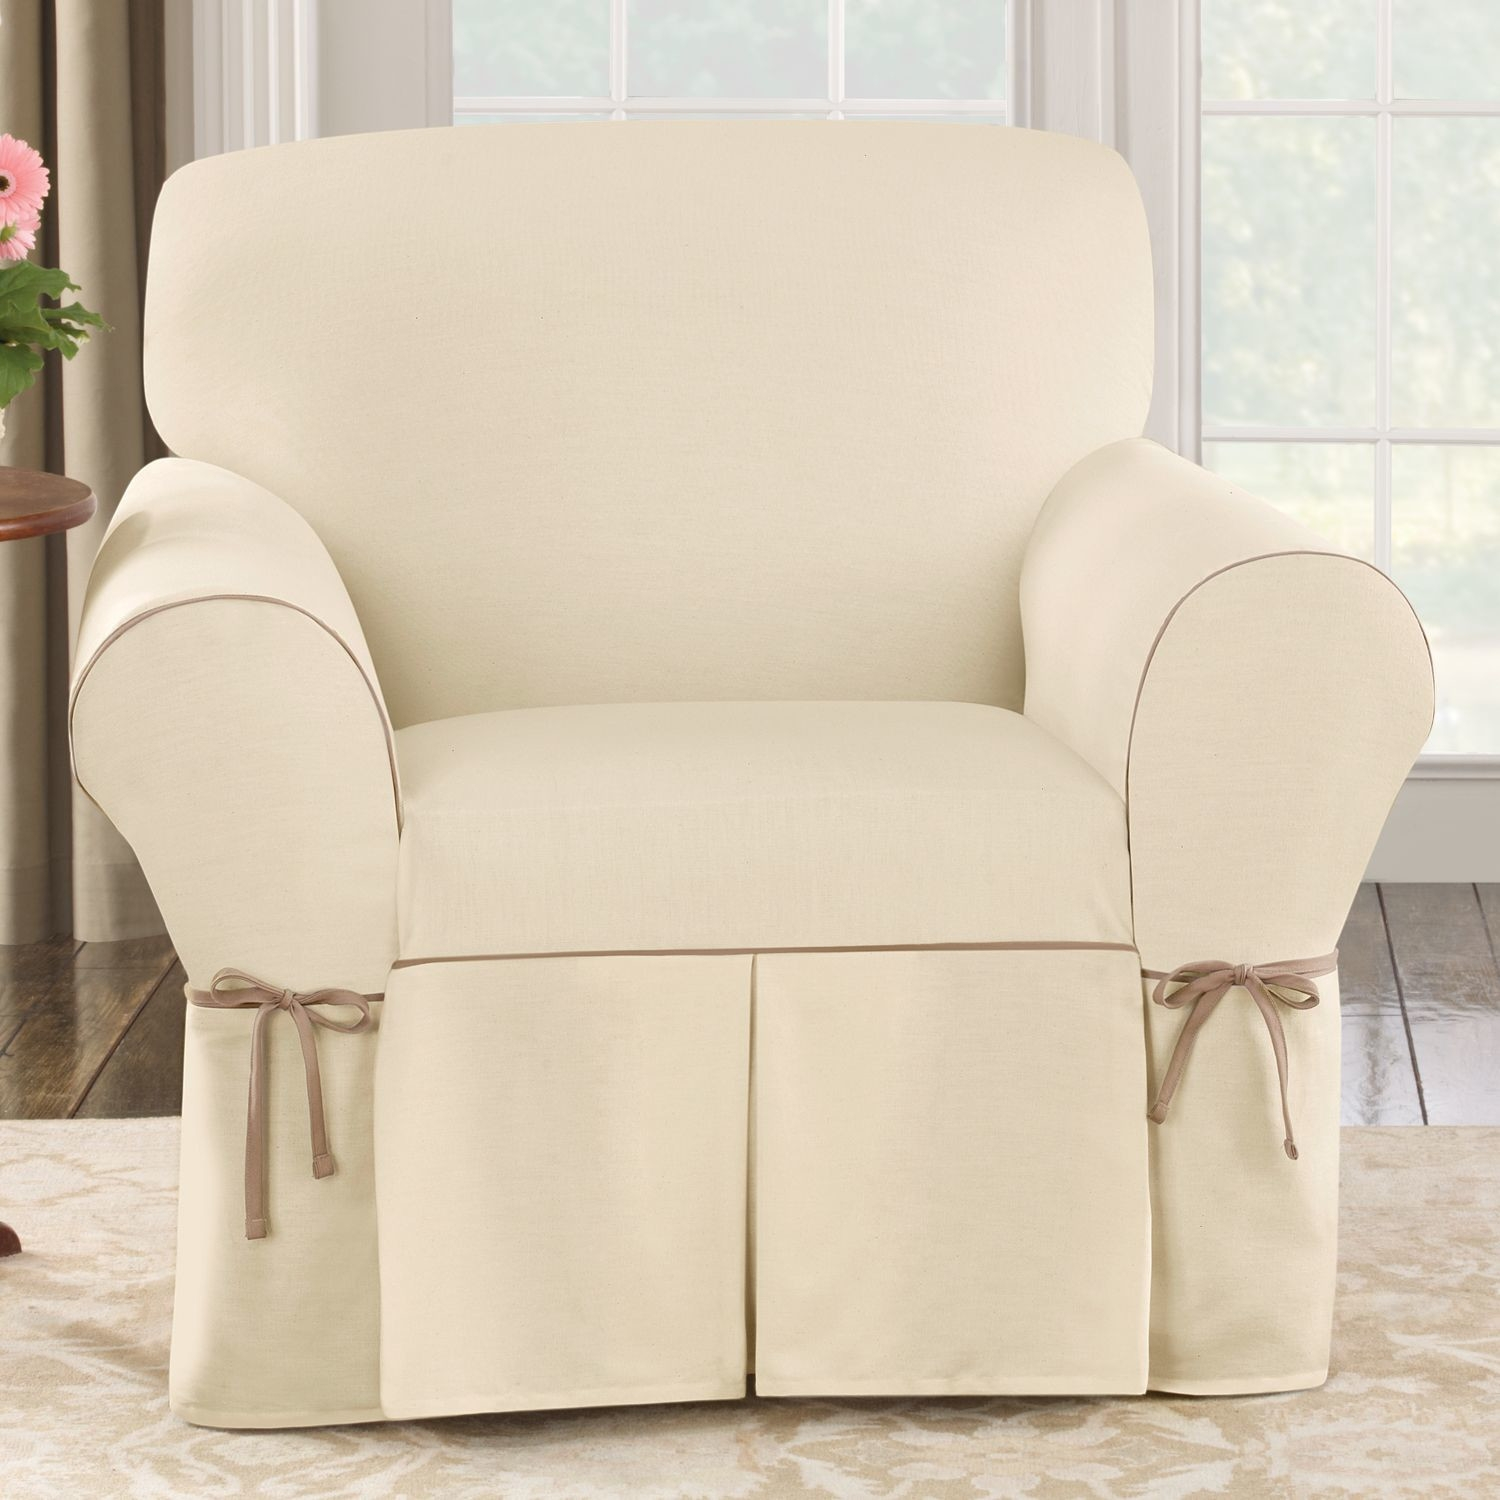 Living Room Slip Covers For Chairs Club Chair Slipcovers With Regard To Sofa And Chair Covers (Image 7 of 15)